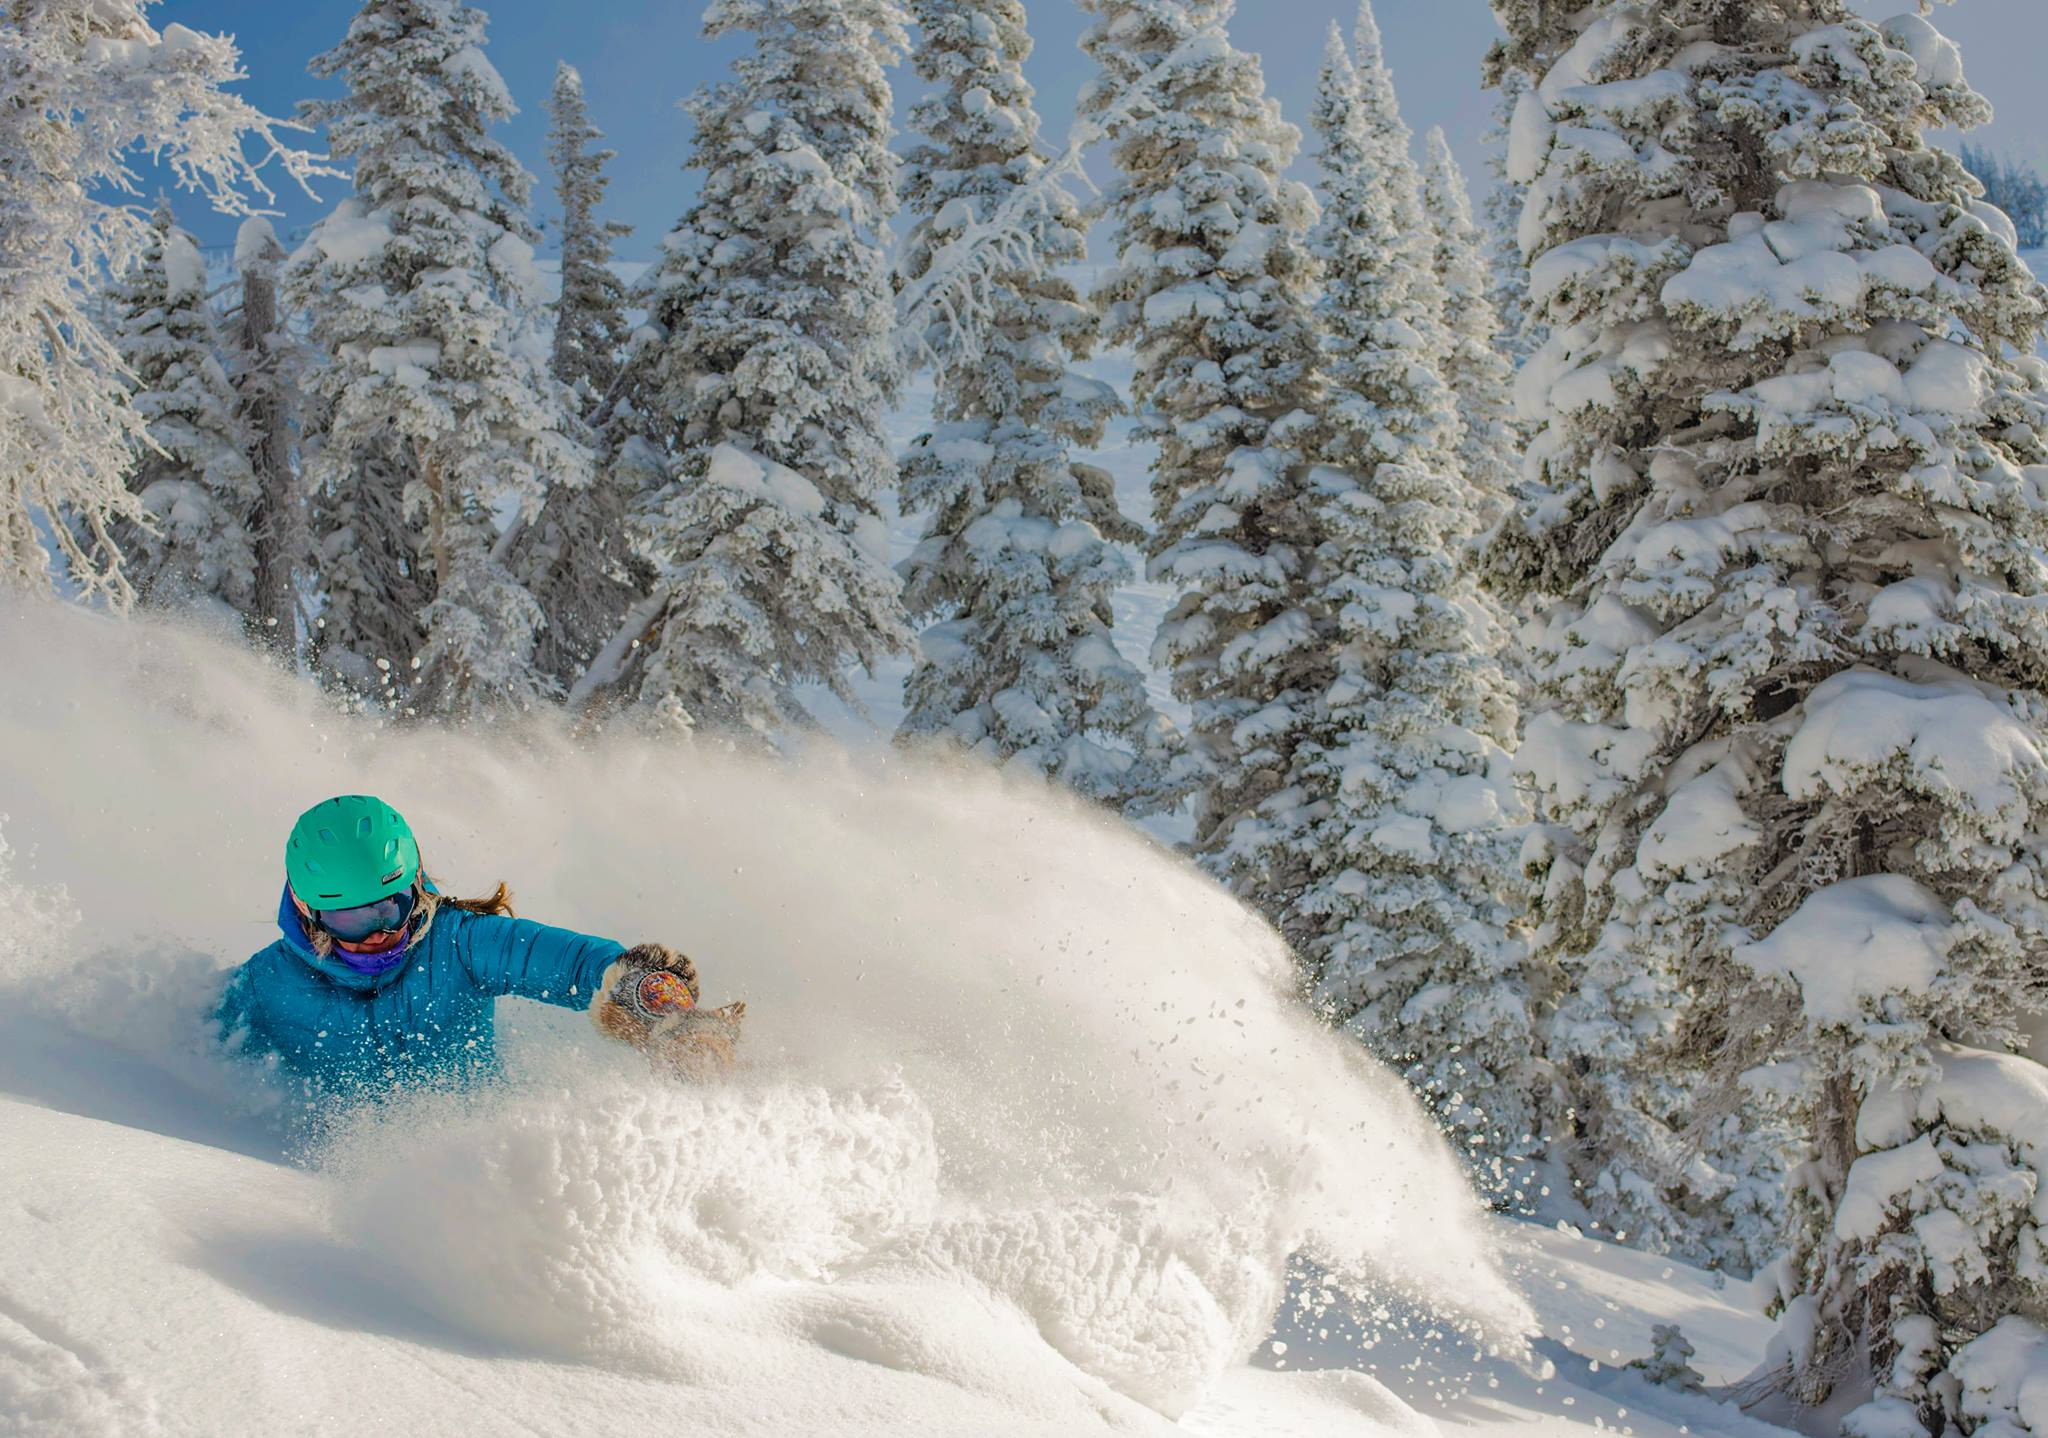 POW Skiing at Targhee earlier this winter. Image: Grand Targhee